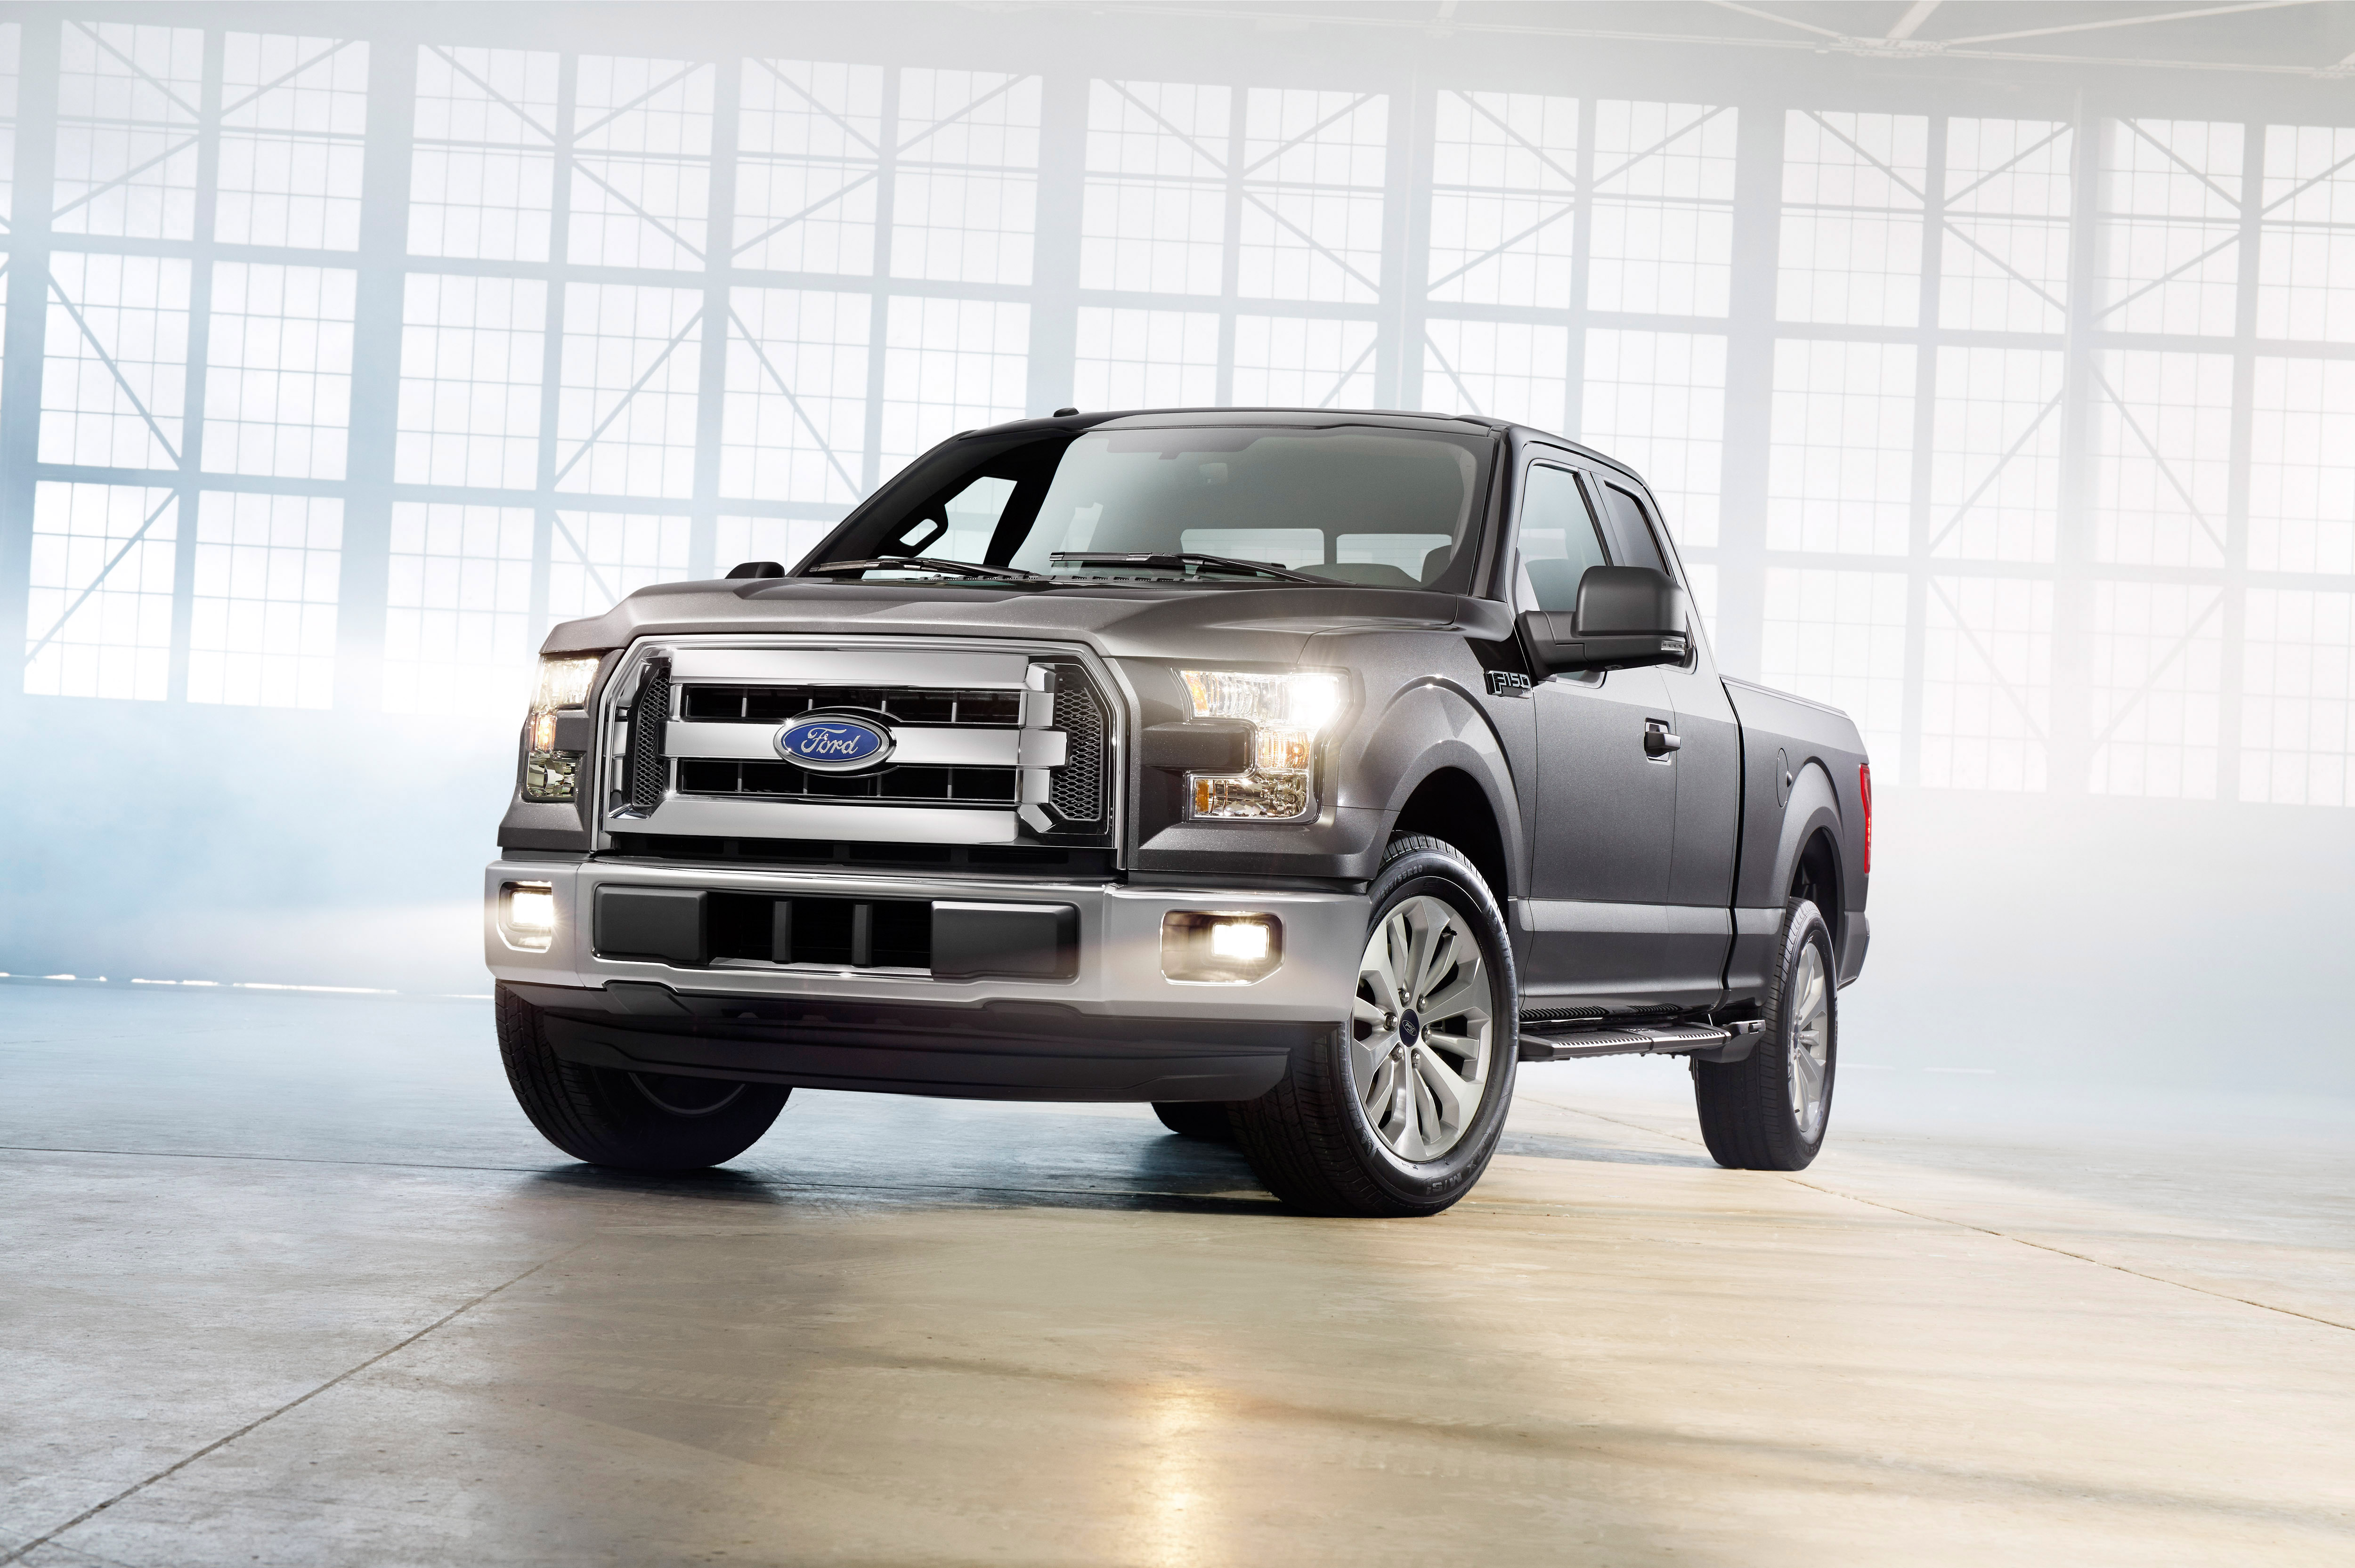 2015 Ford F-150 (aluminum frame) with Ecoboost Engine